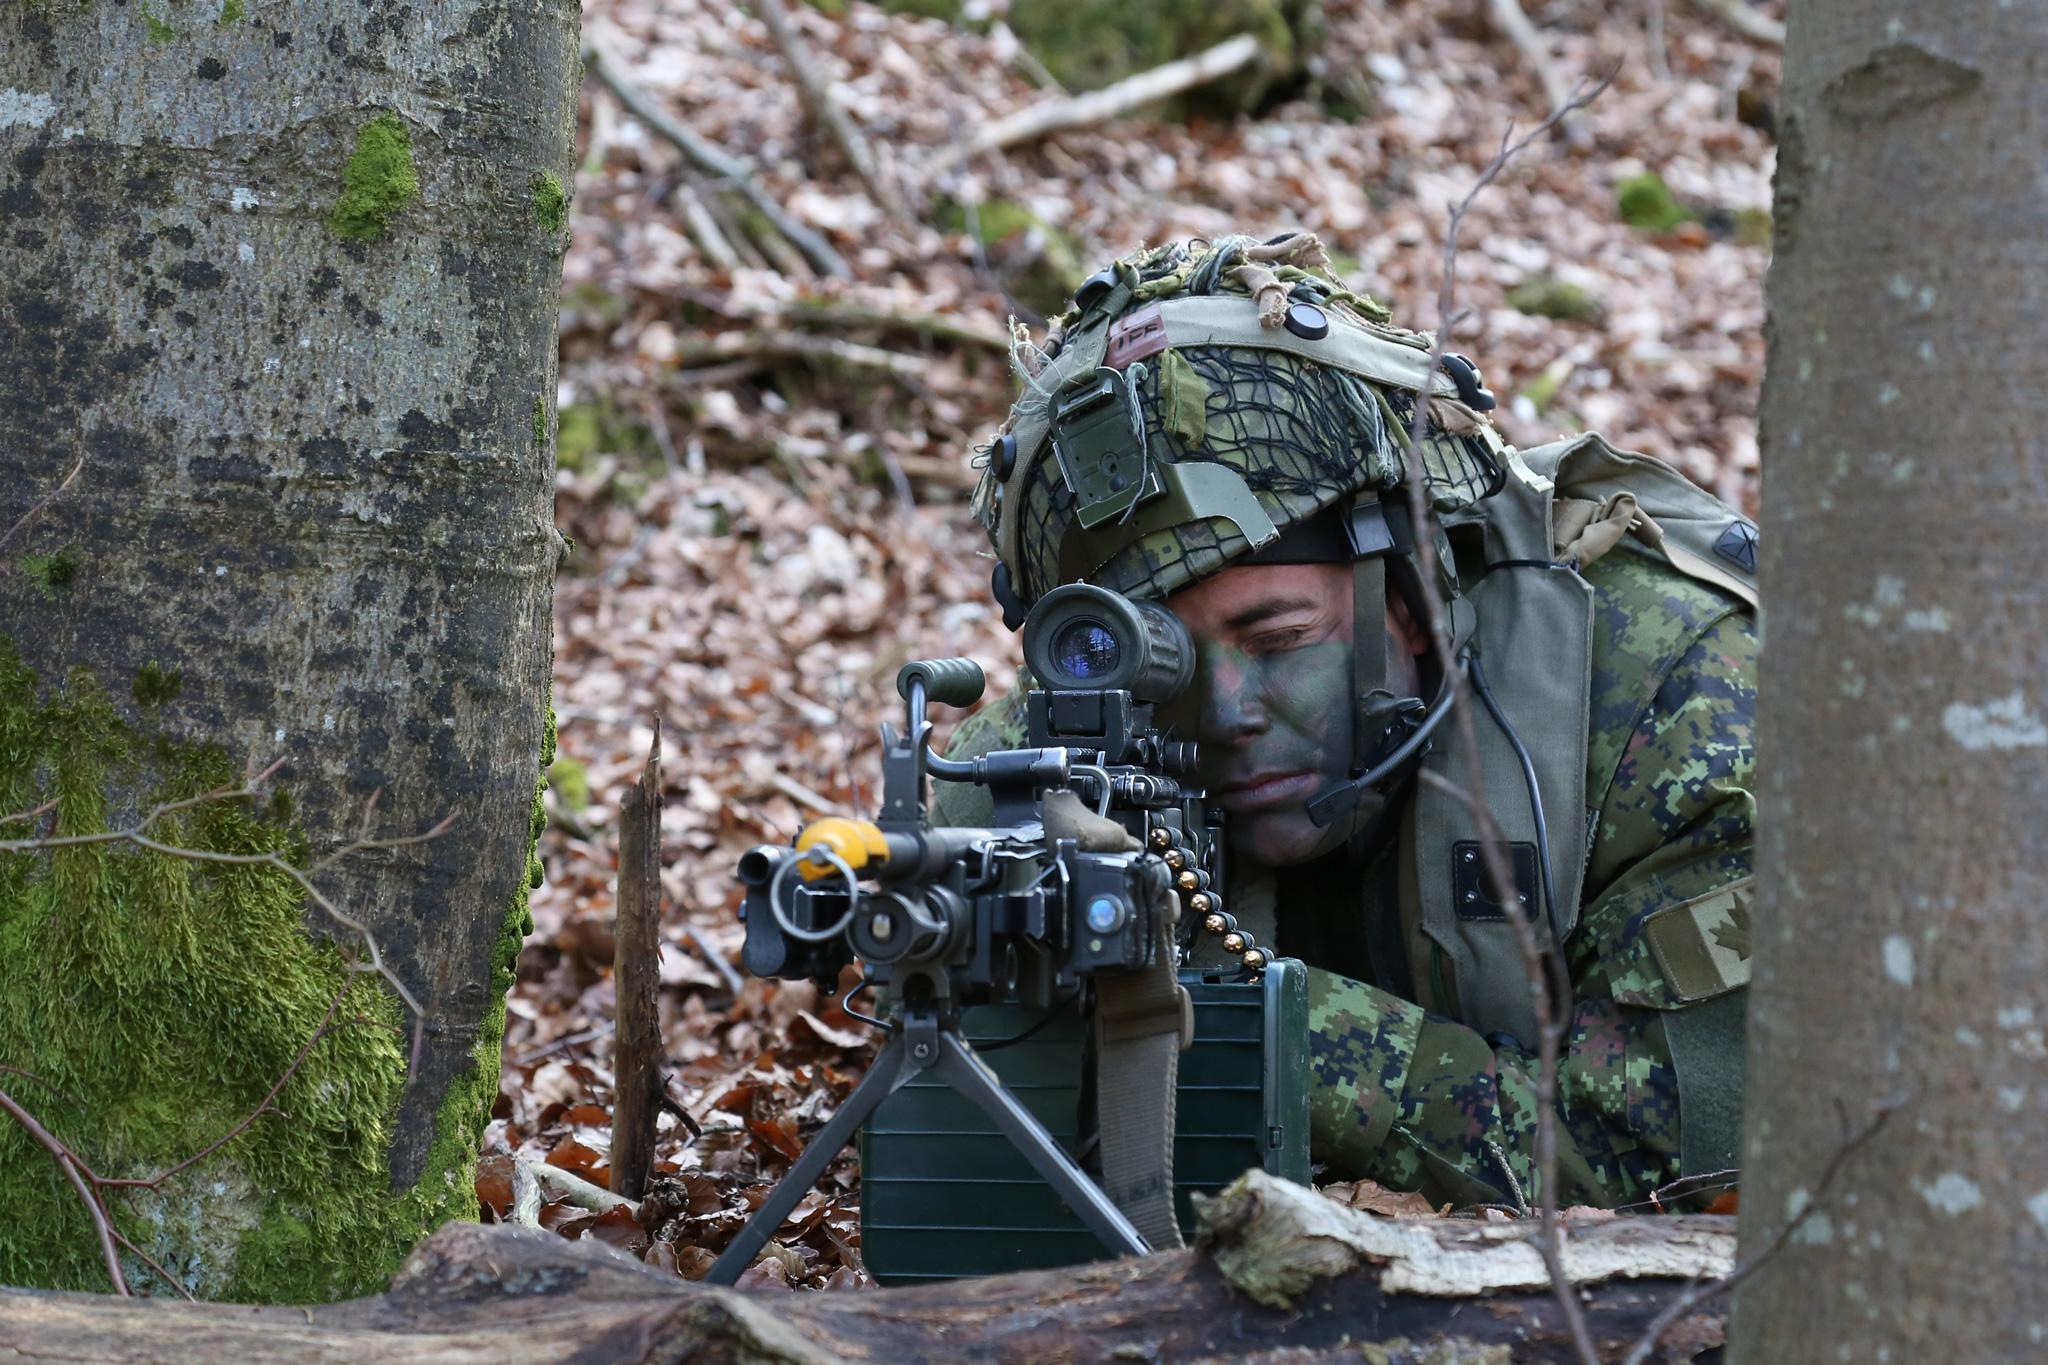 A Canadian soldier of Charlie Company, 3rd Princess Patricia Canadian Light Infantry provides security while conducting a react to contact scenario during Exercise Allied Spirit VI at 7th Army Training Command's Hohenfels Training Area, Germany, March 16, 2017.